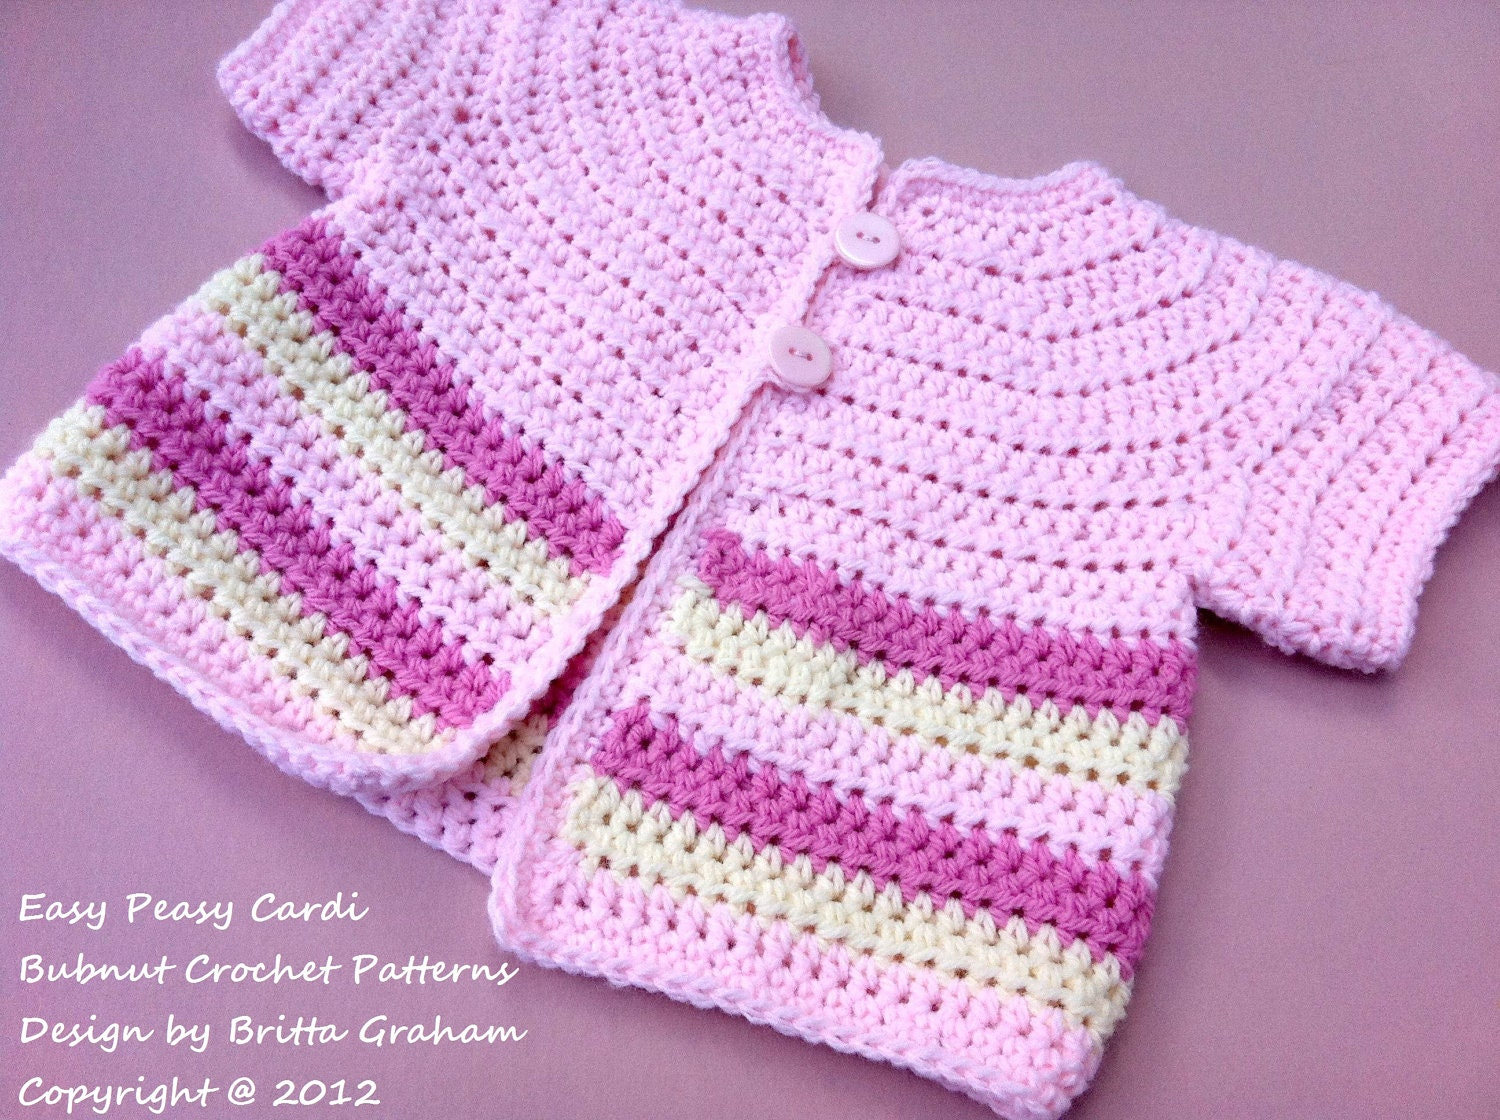 Free Crochet Patterns For Easy Baby Sweaters : Easy Peasy Baby Sweater Cardigan Crochet by bubnutPatterns